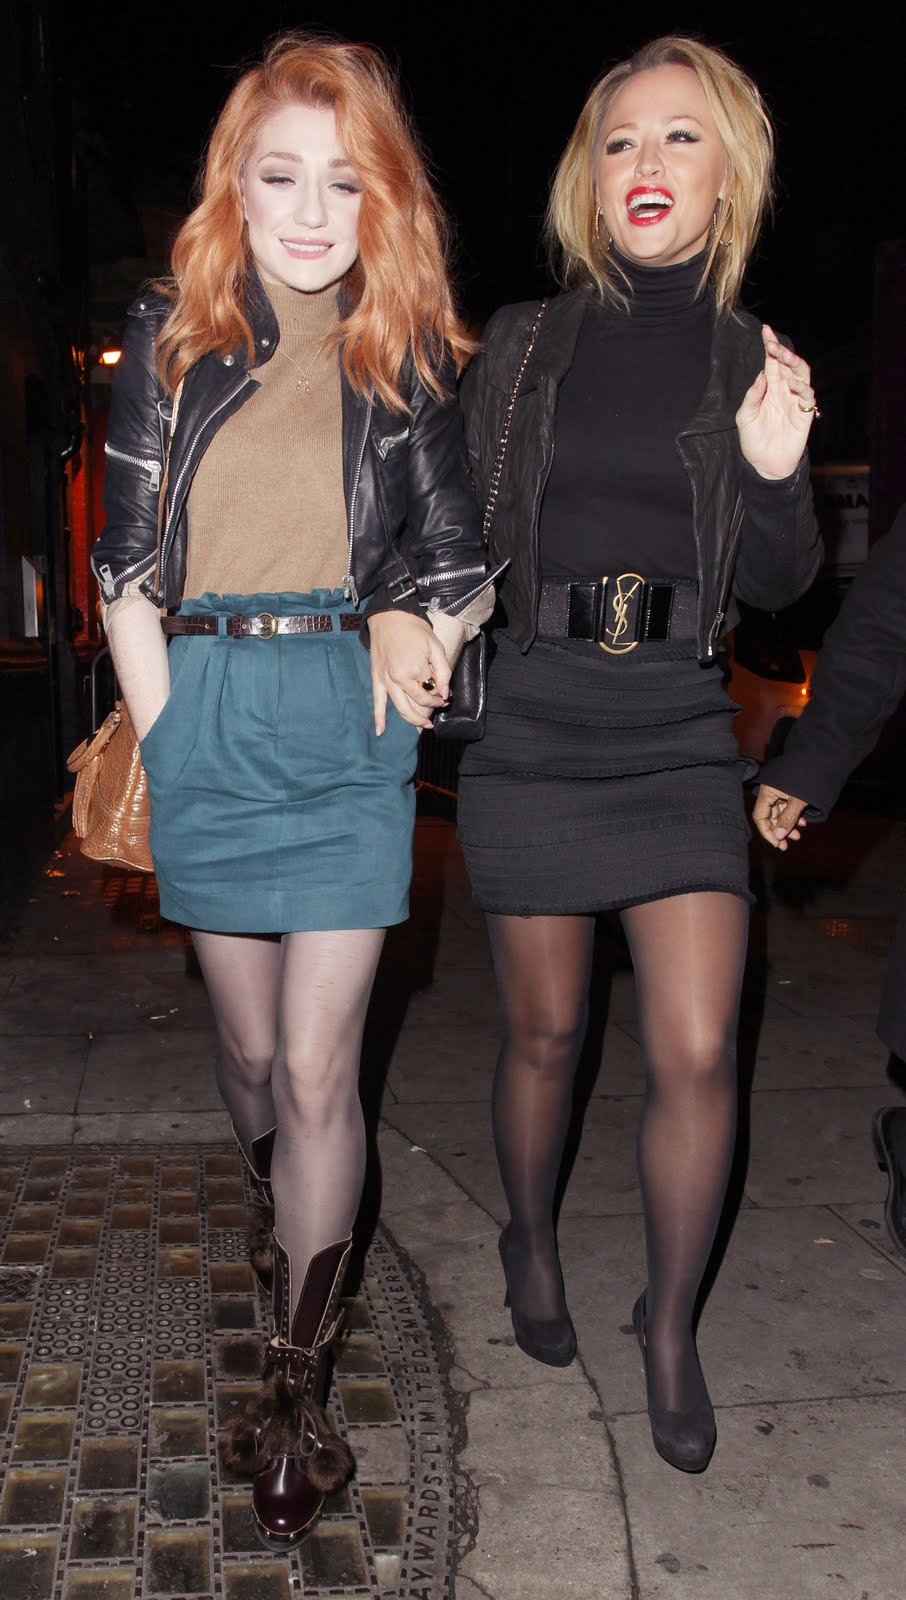 Pantyhose girls aloud